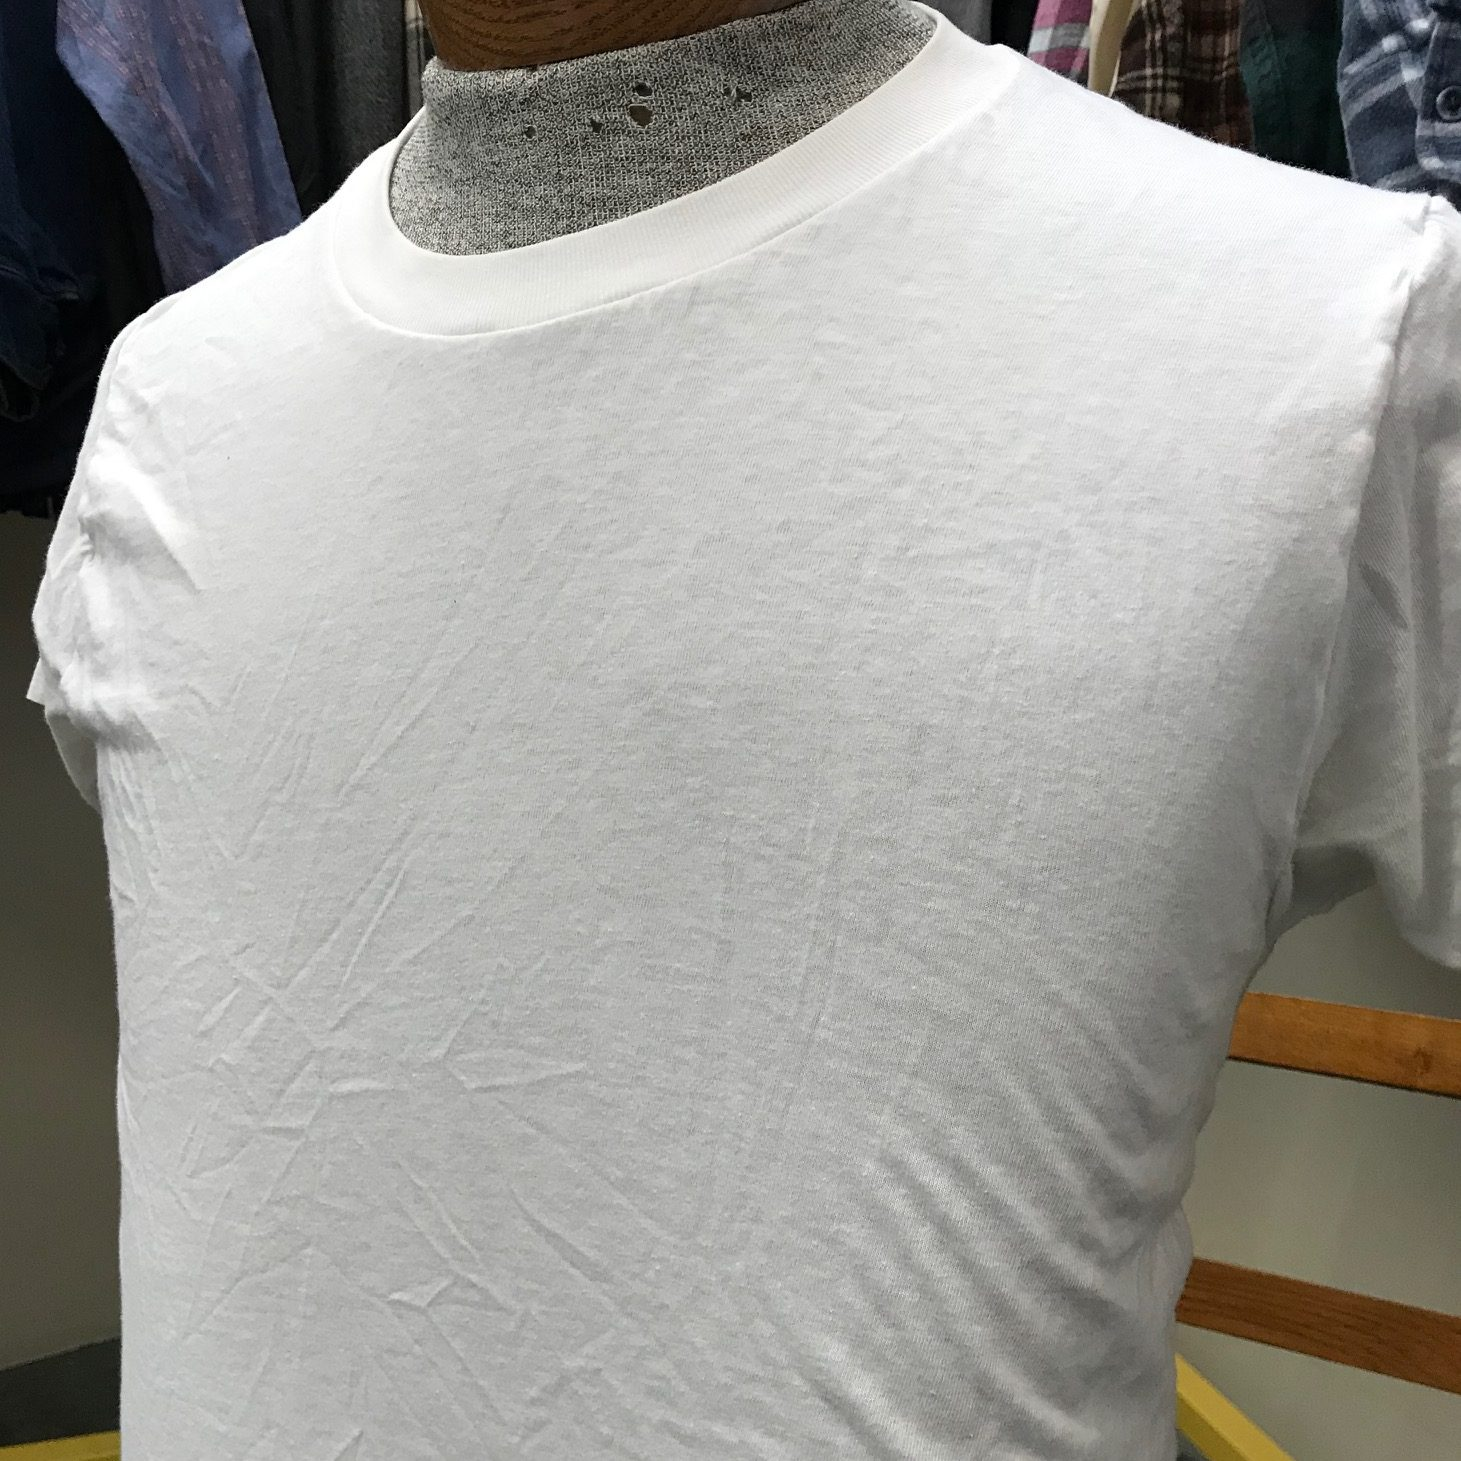 Vintage white t-shirt without a pocket